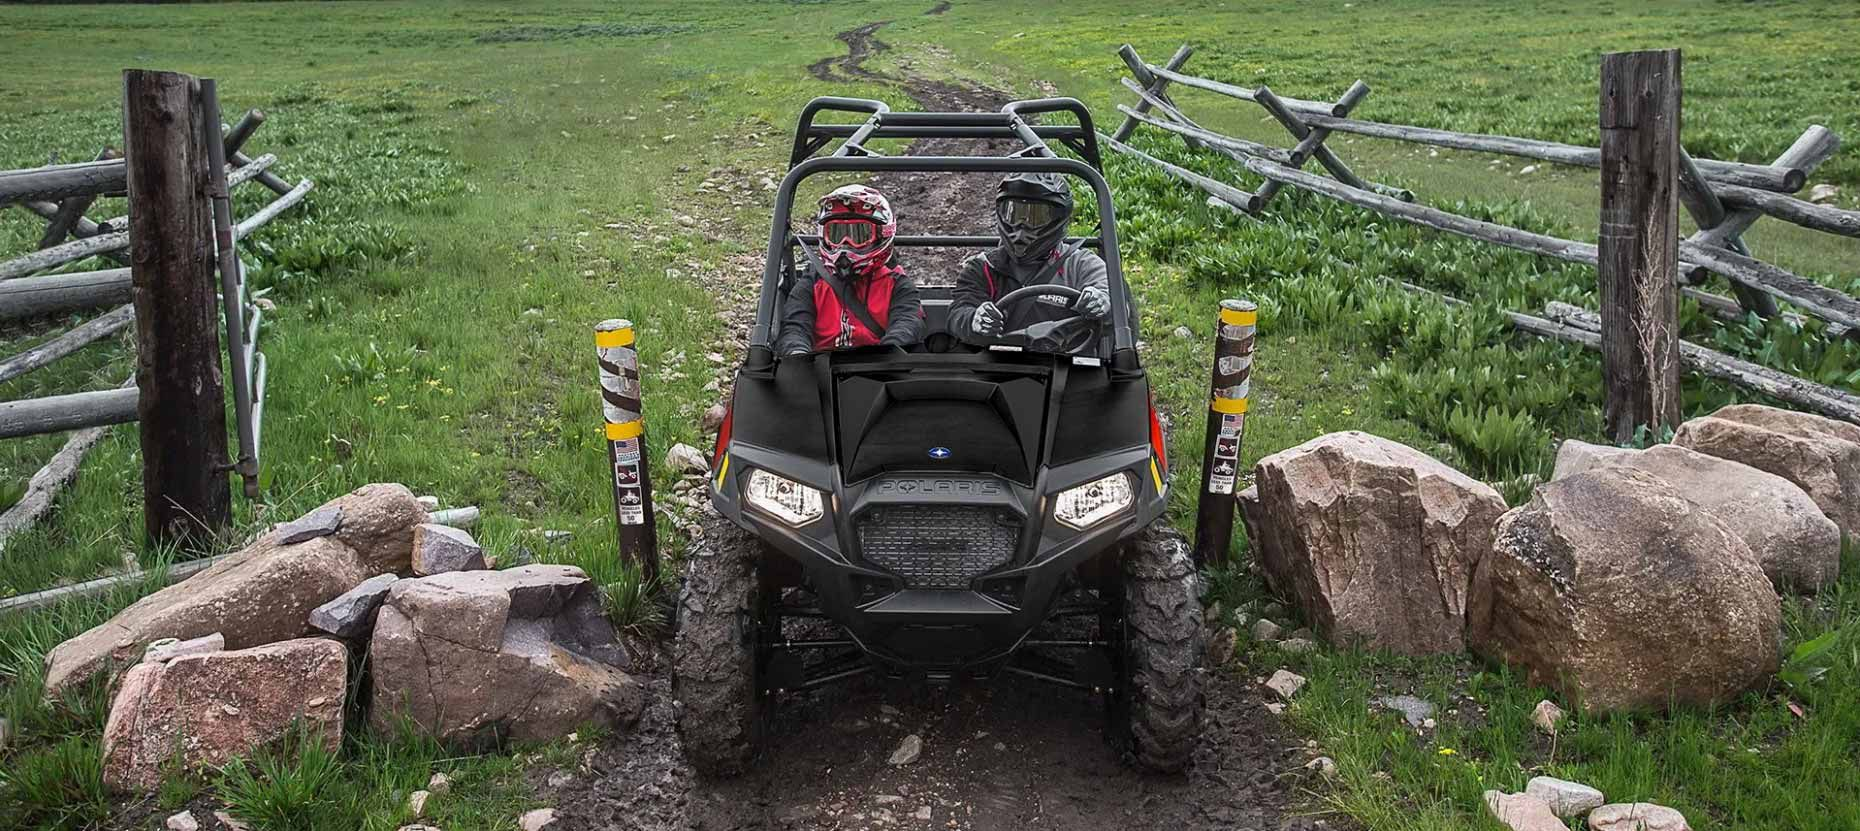 The 50-inch width means you can go almost anywhere, even those restricted trails.